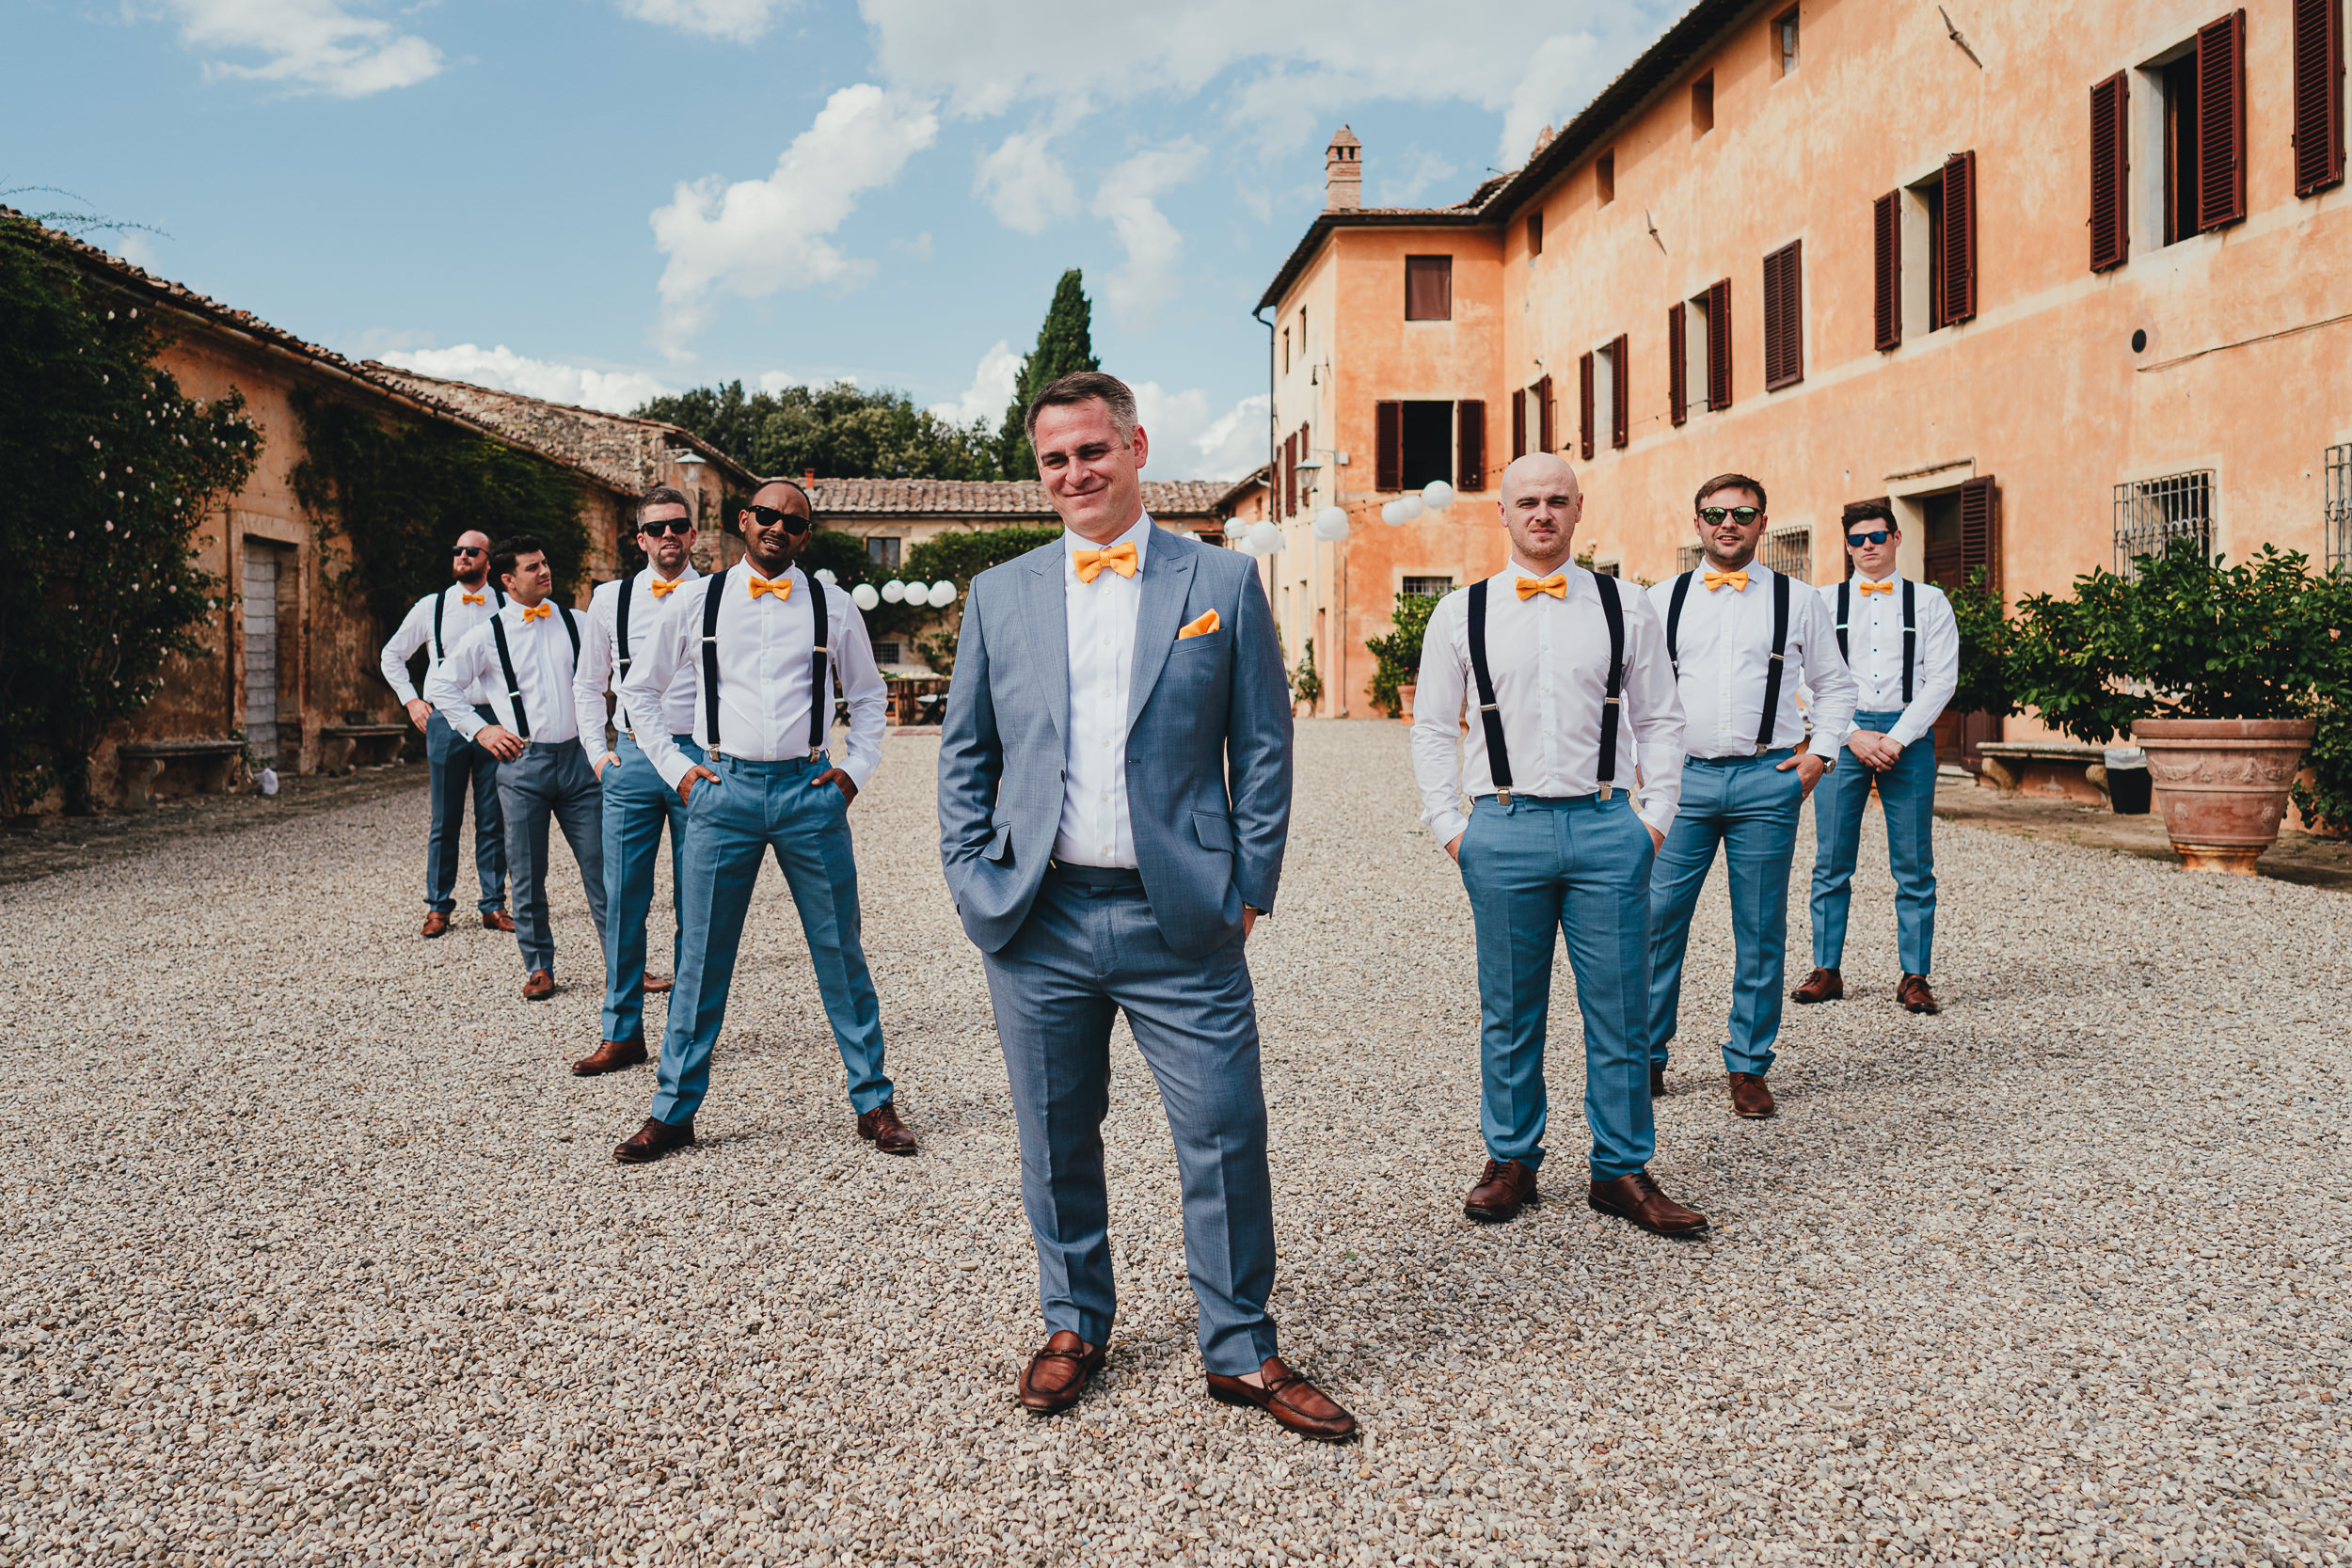 Tuscan Villa Wedding - portrait of the Groom's party